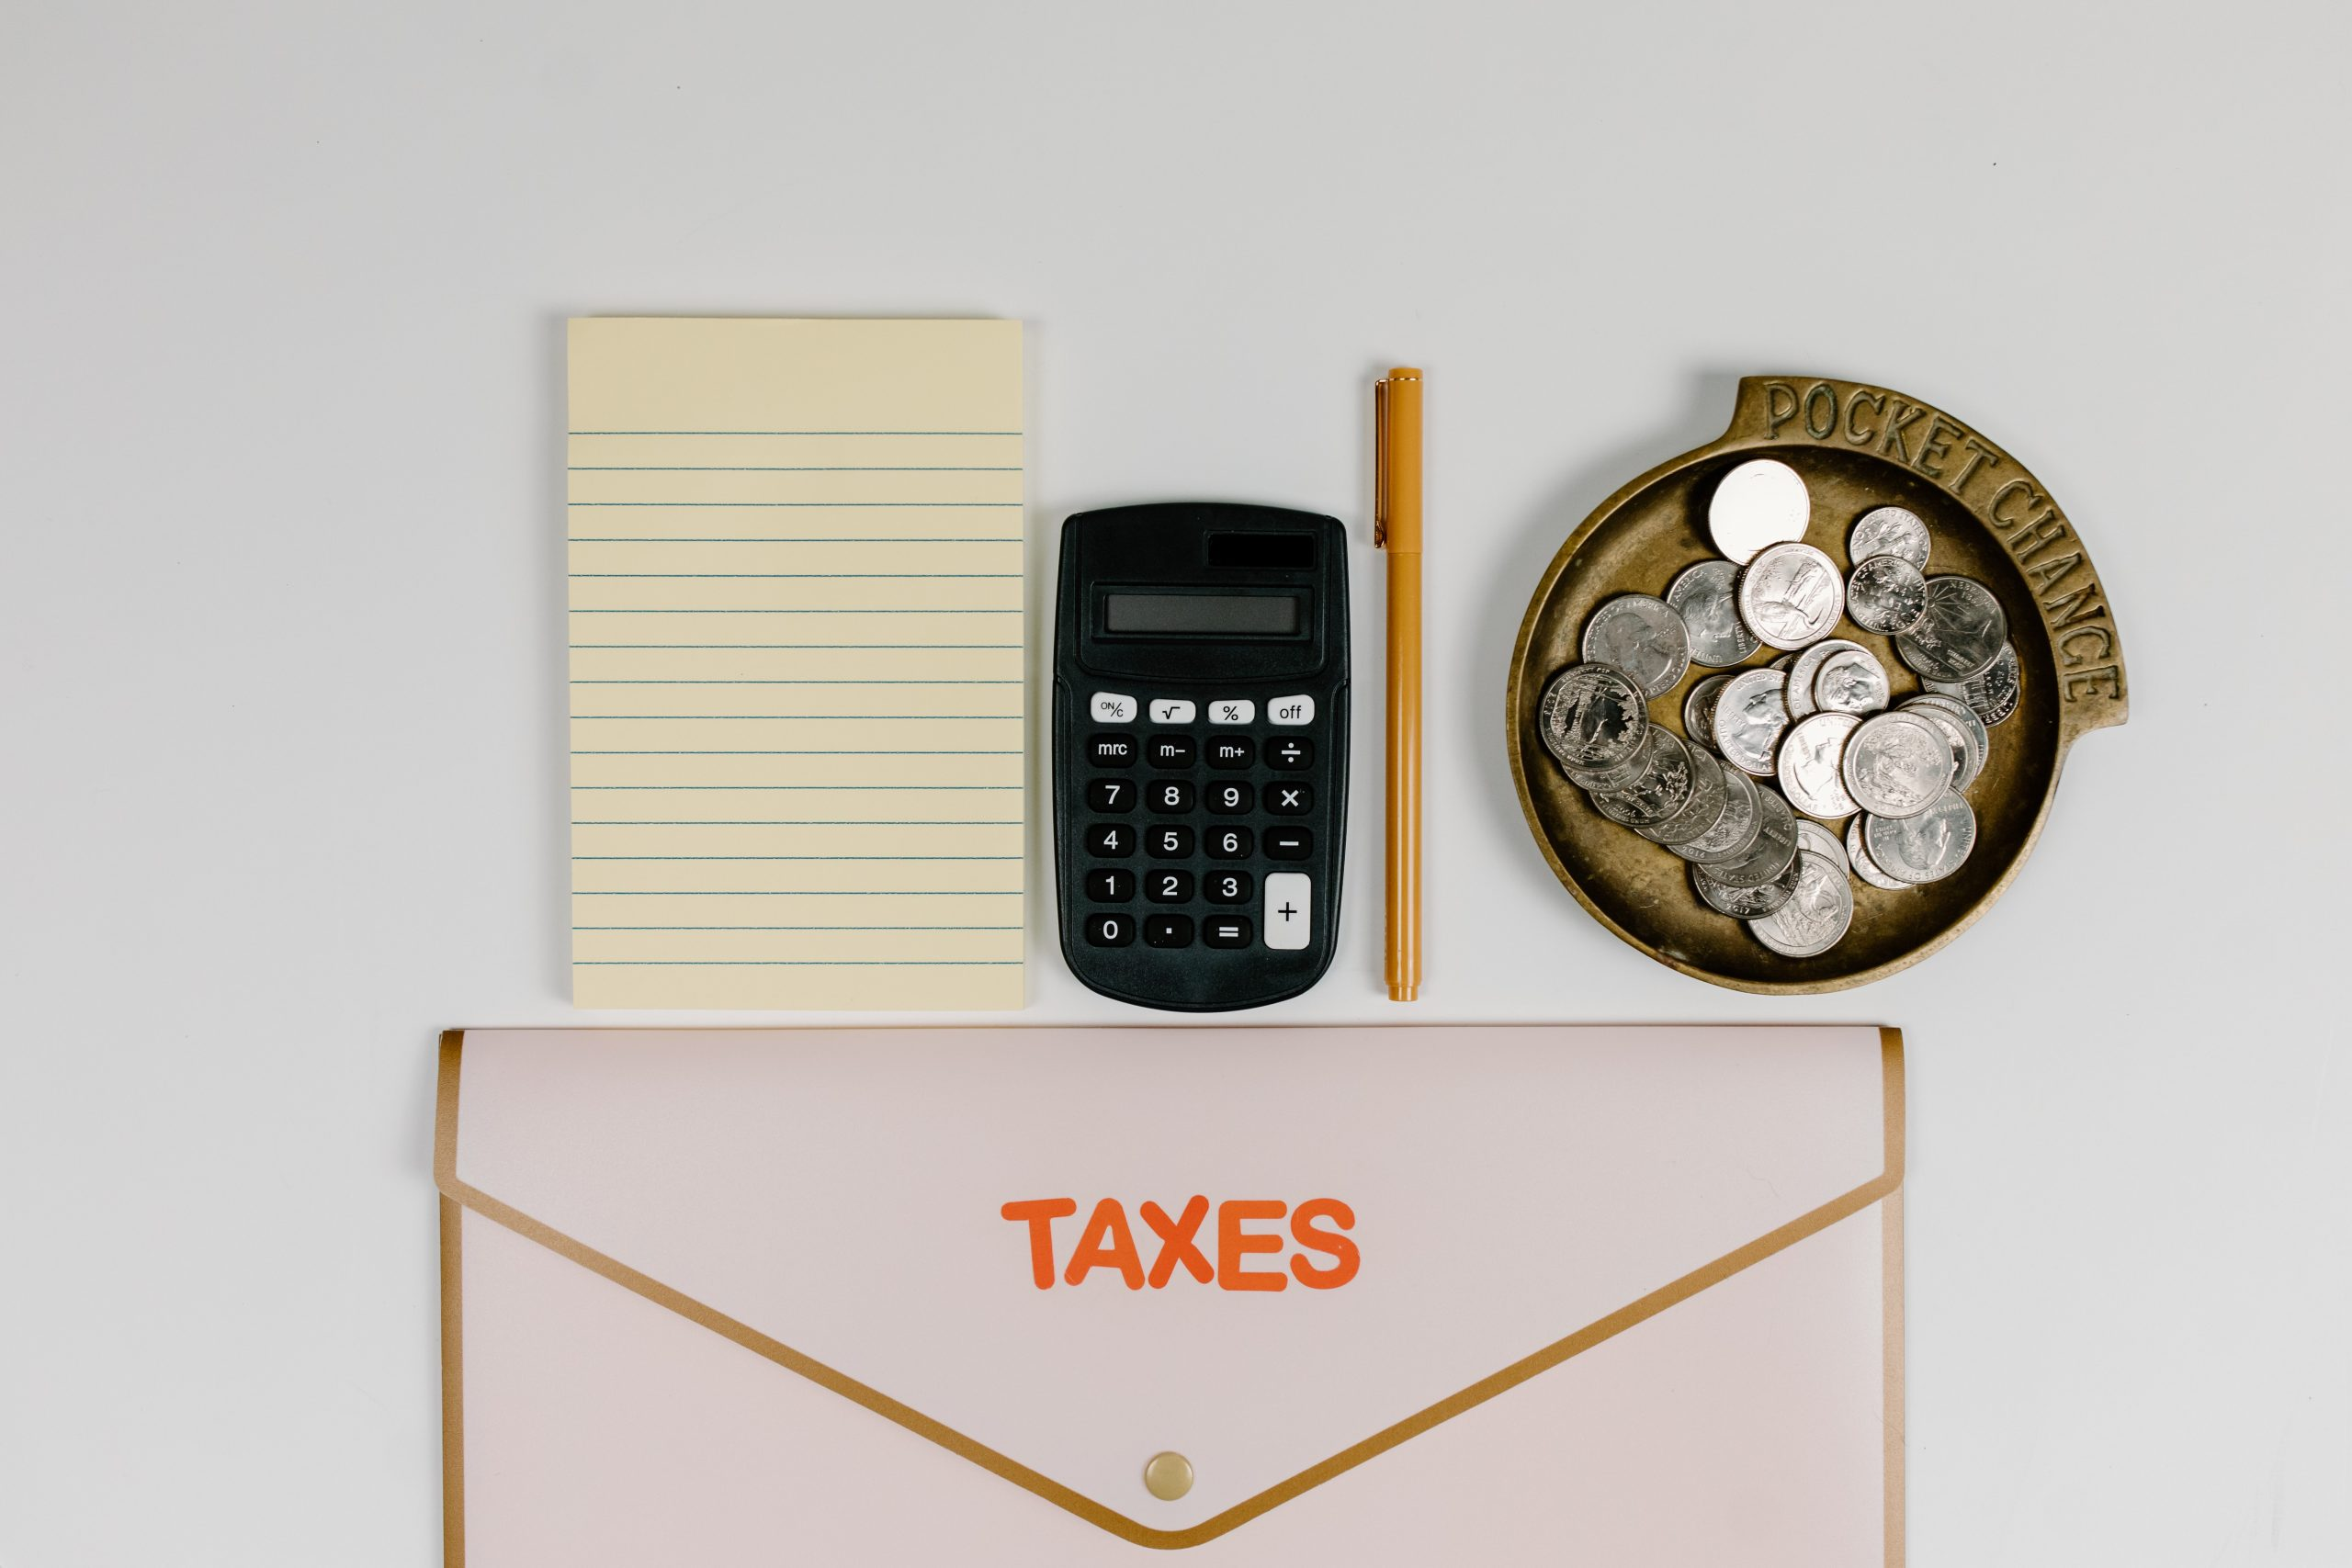 Tax Accountants Brisbane - calculator and stationery on surface